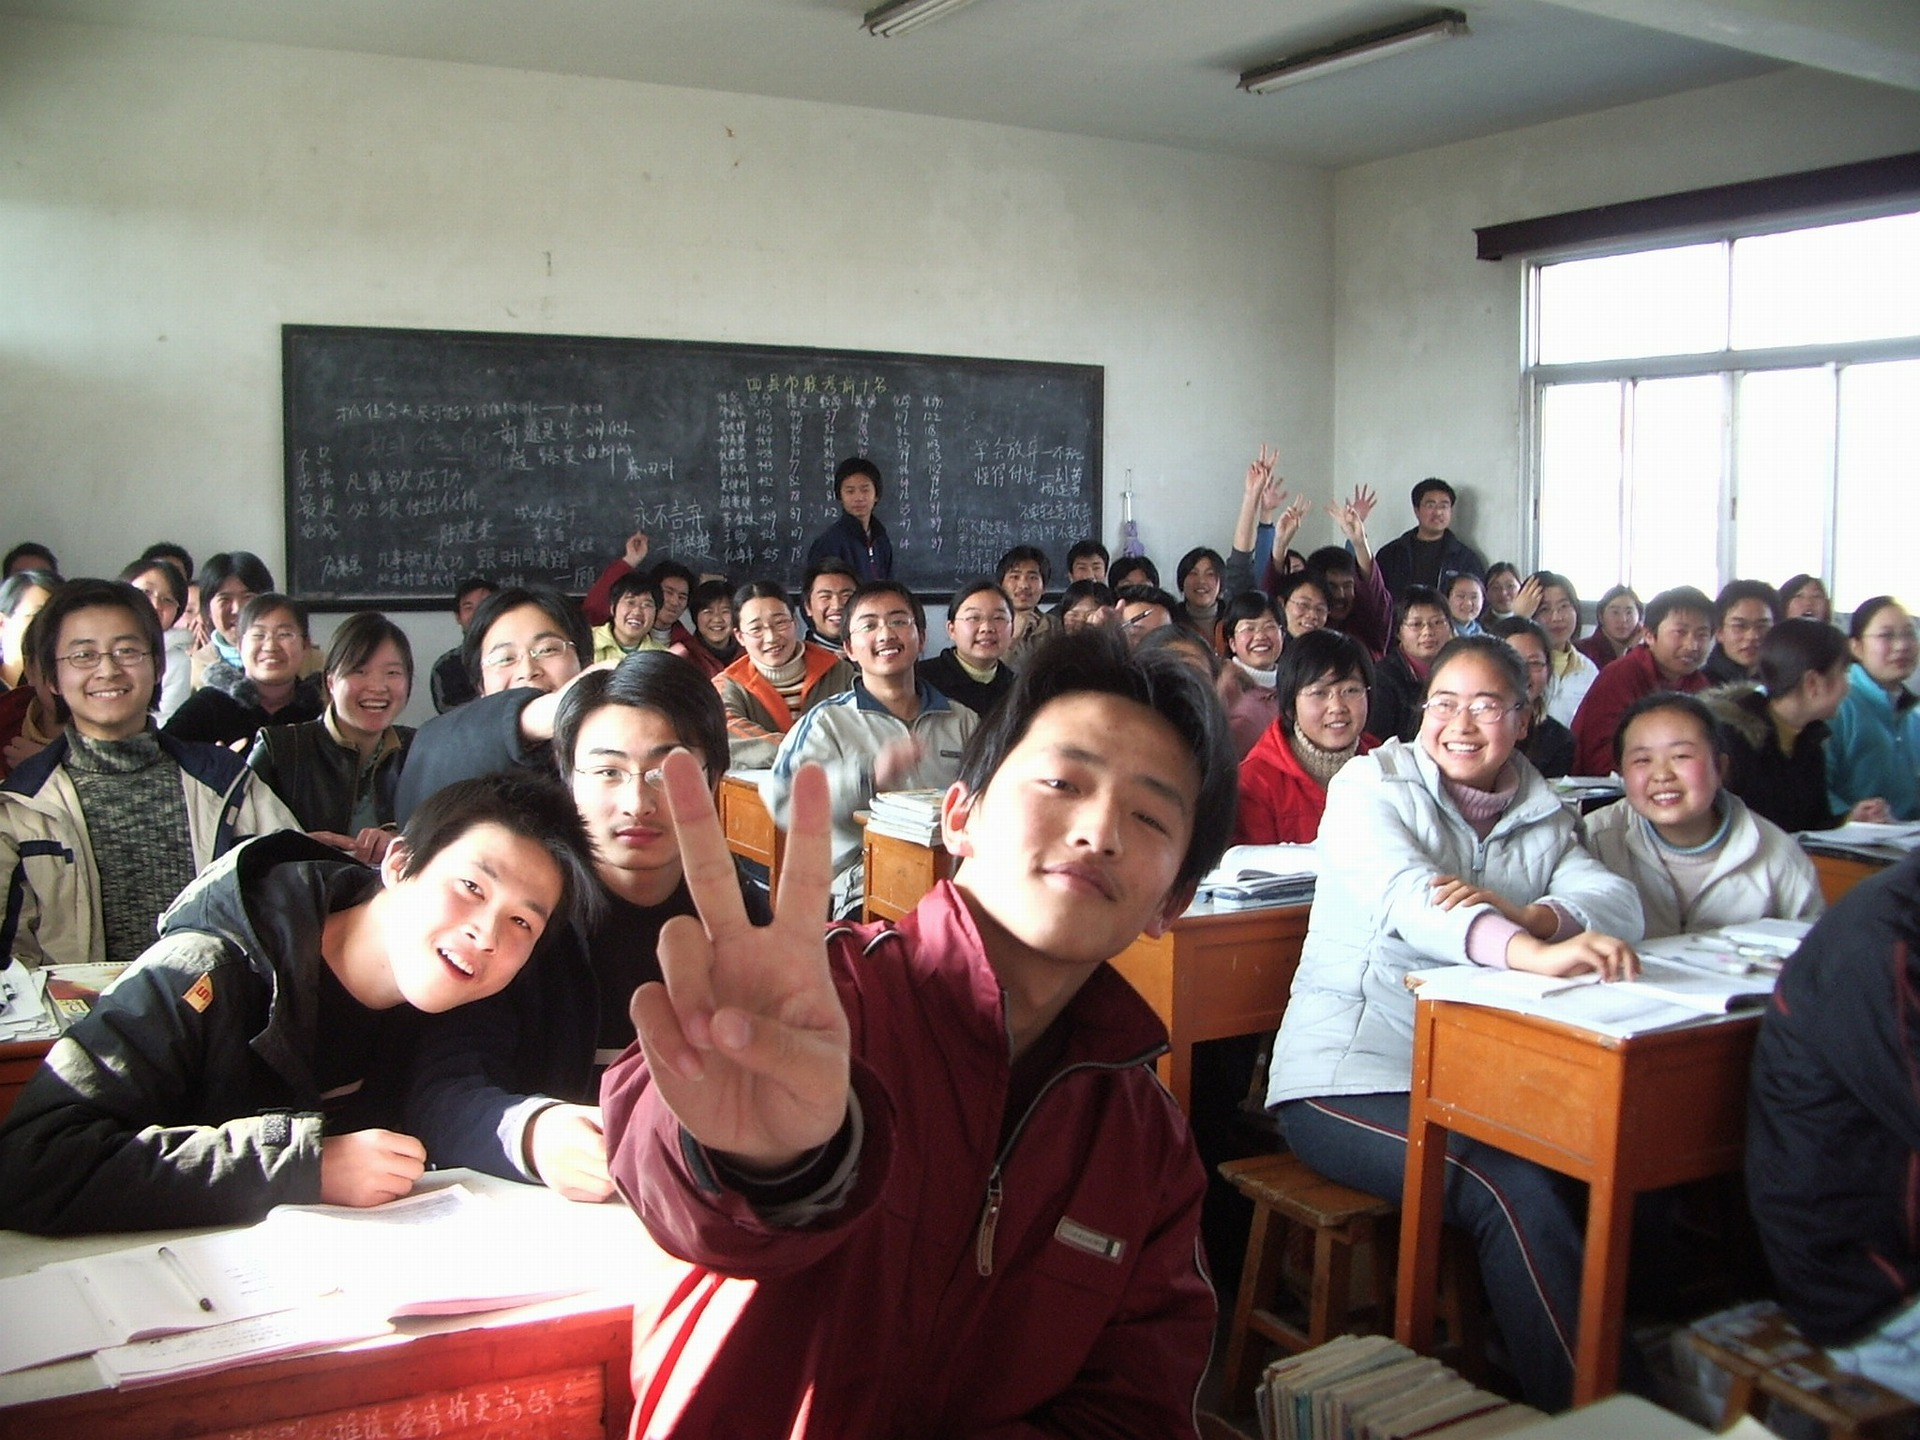 Class of students at desks smiling for the camera